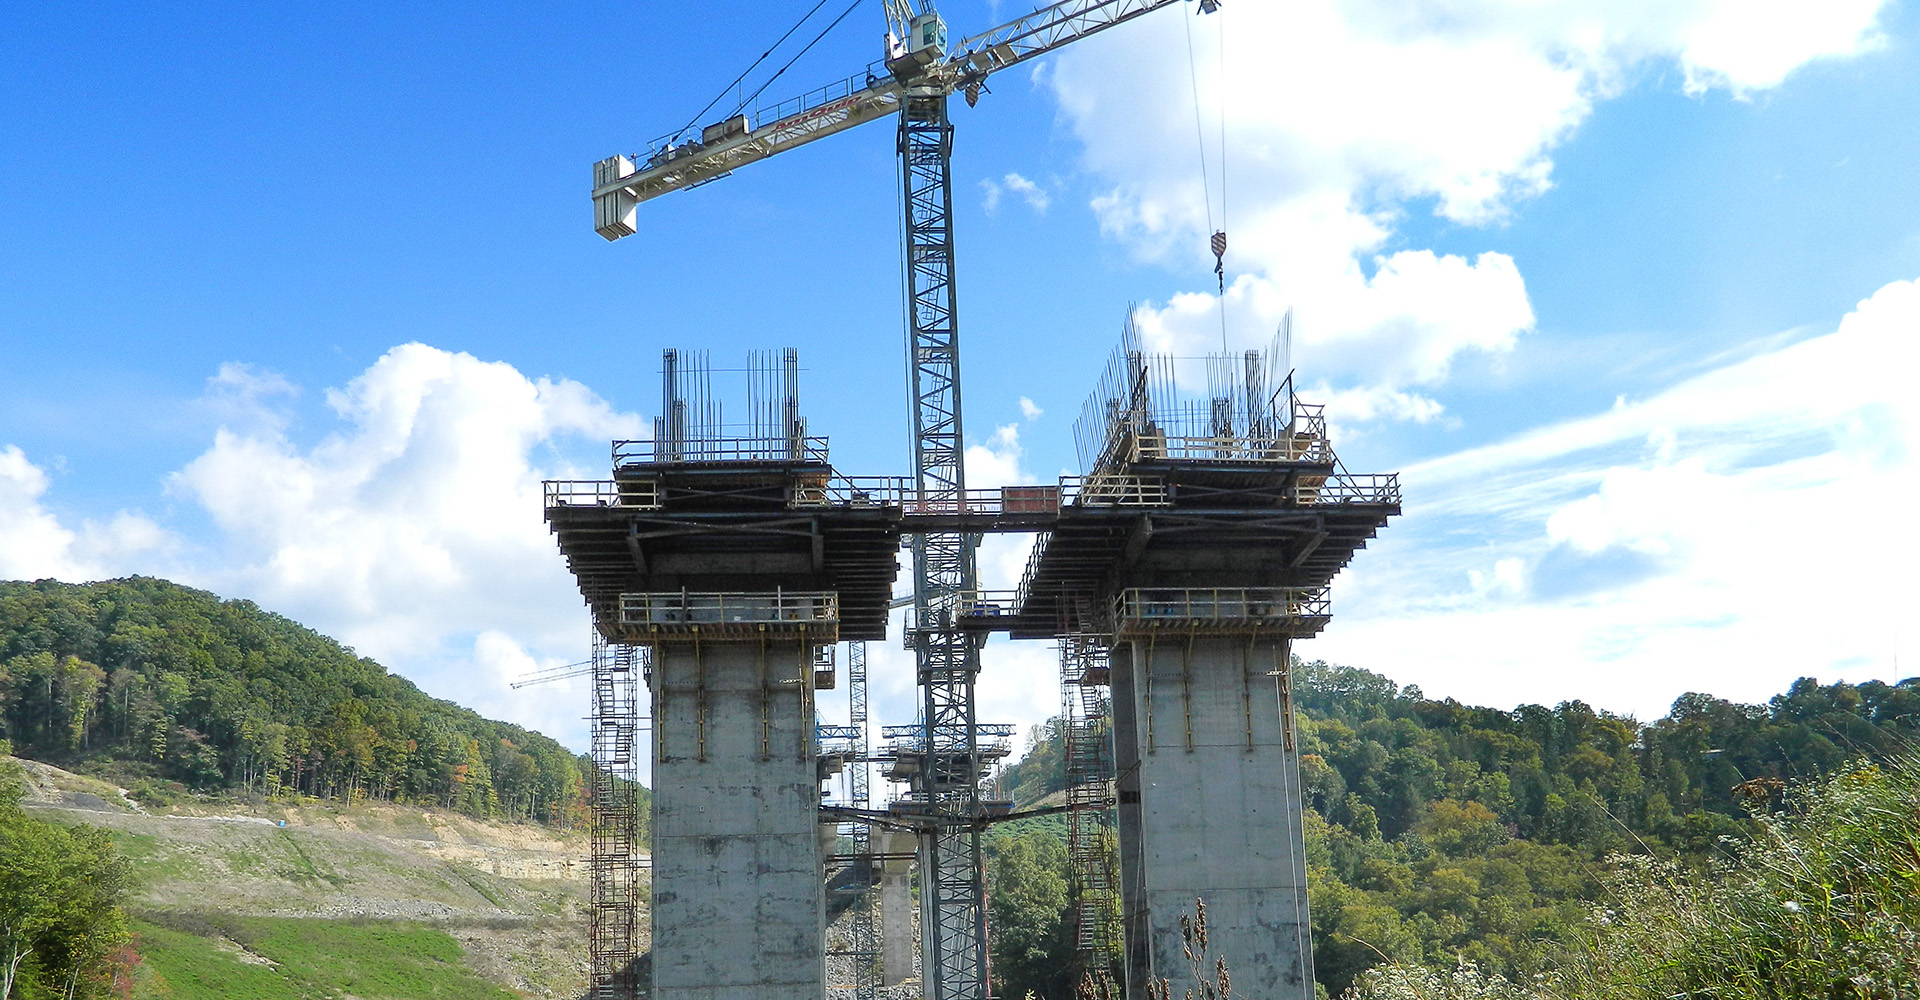 Bridge under construction.